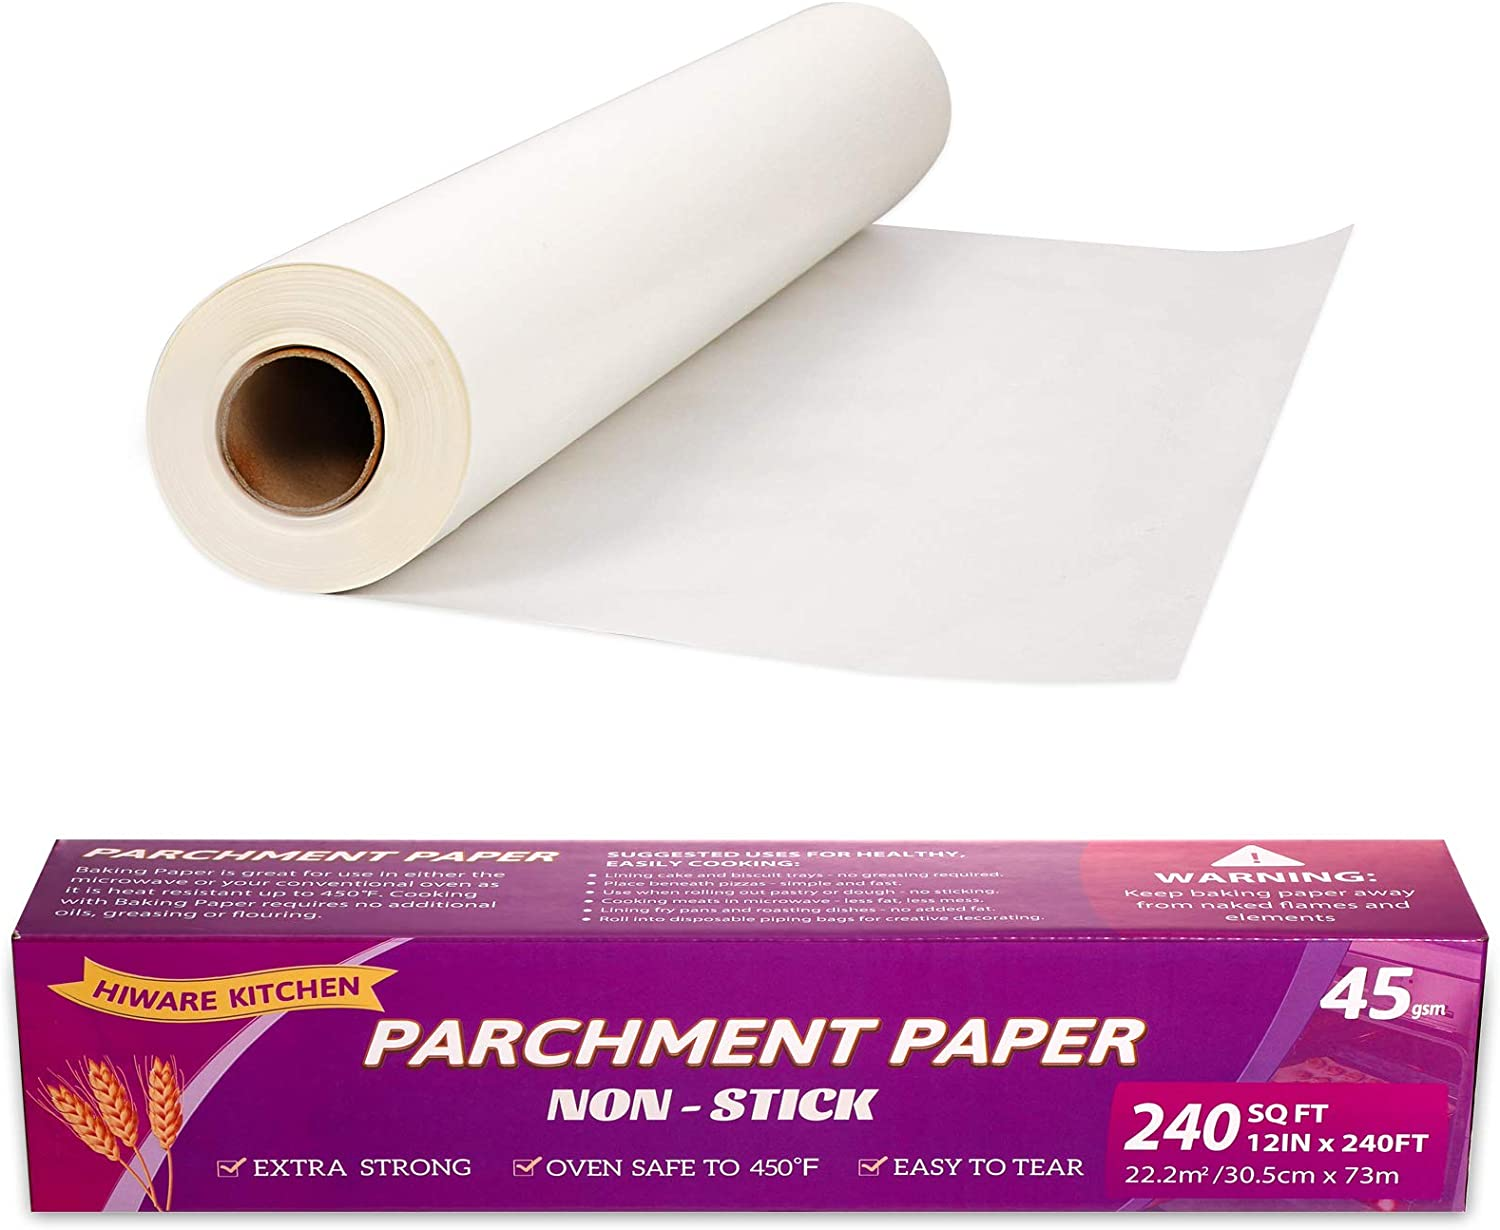 Hiware Parchment Paper Roll for Baking, 12 in x 240 ft, 240 Sq.ft - Non-Stick Parchment Paper For Baking, Cooking, Grilling, Air Fryer and Steaming